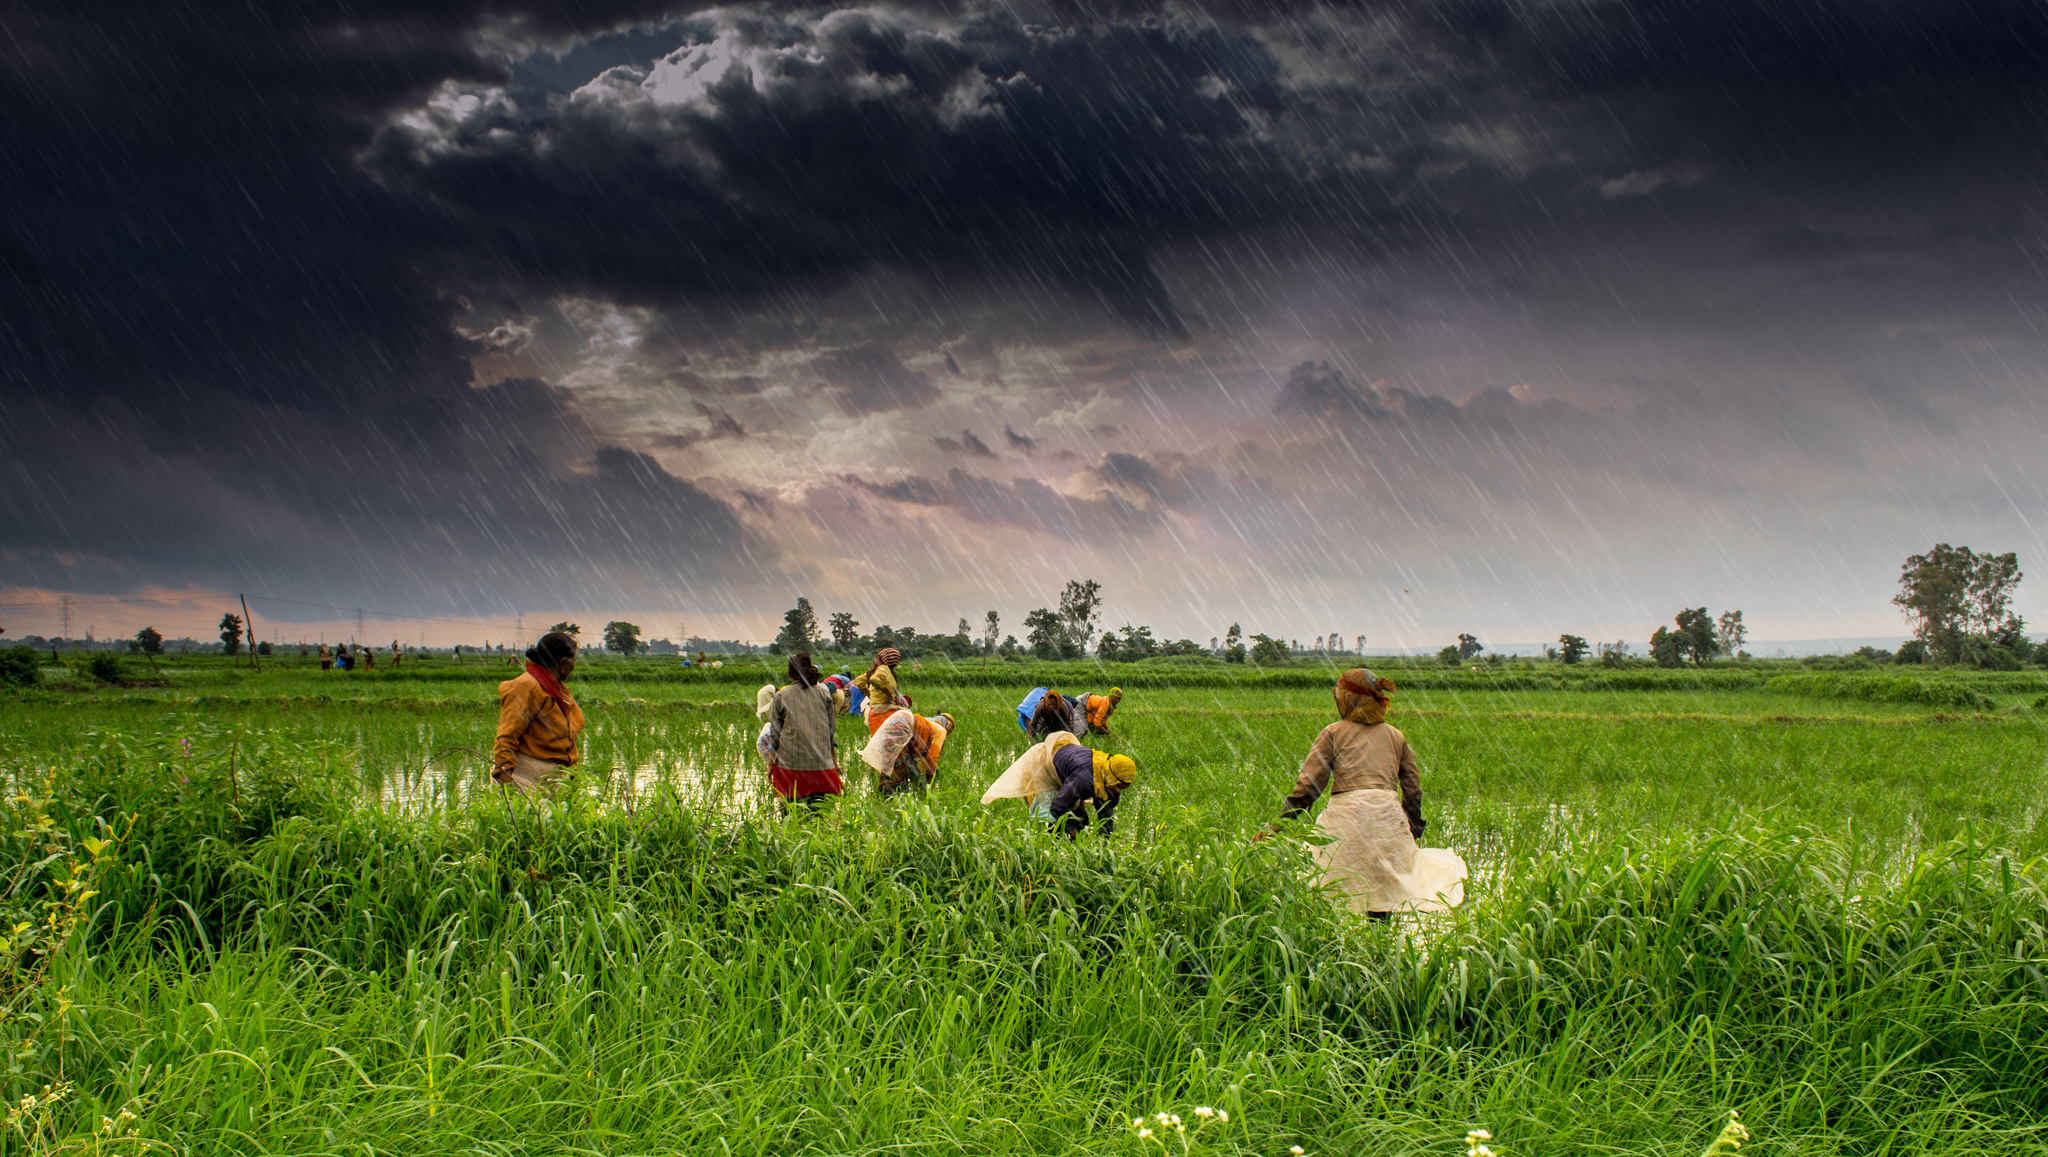 A rice farm in Madhya Pradesh. Credit: tataimitra/Flickr, CC BY 2.0